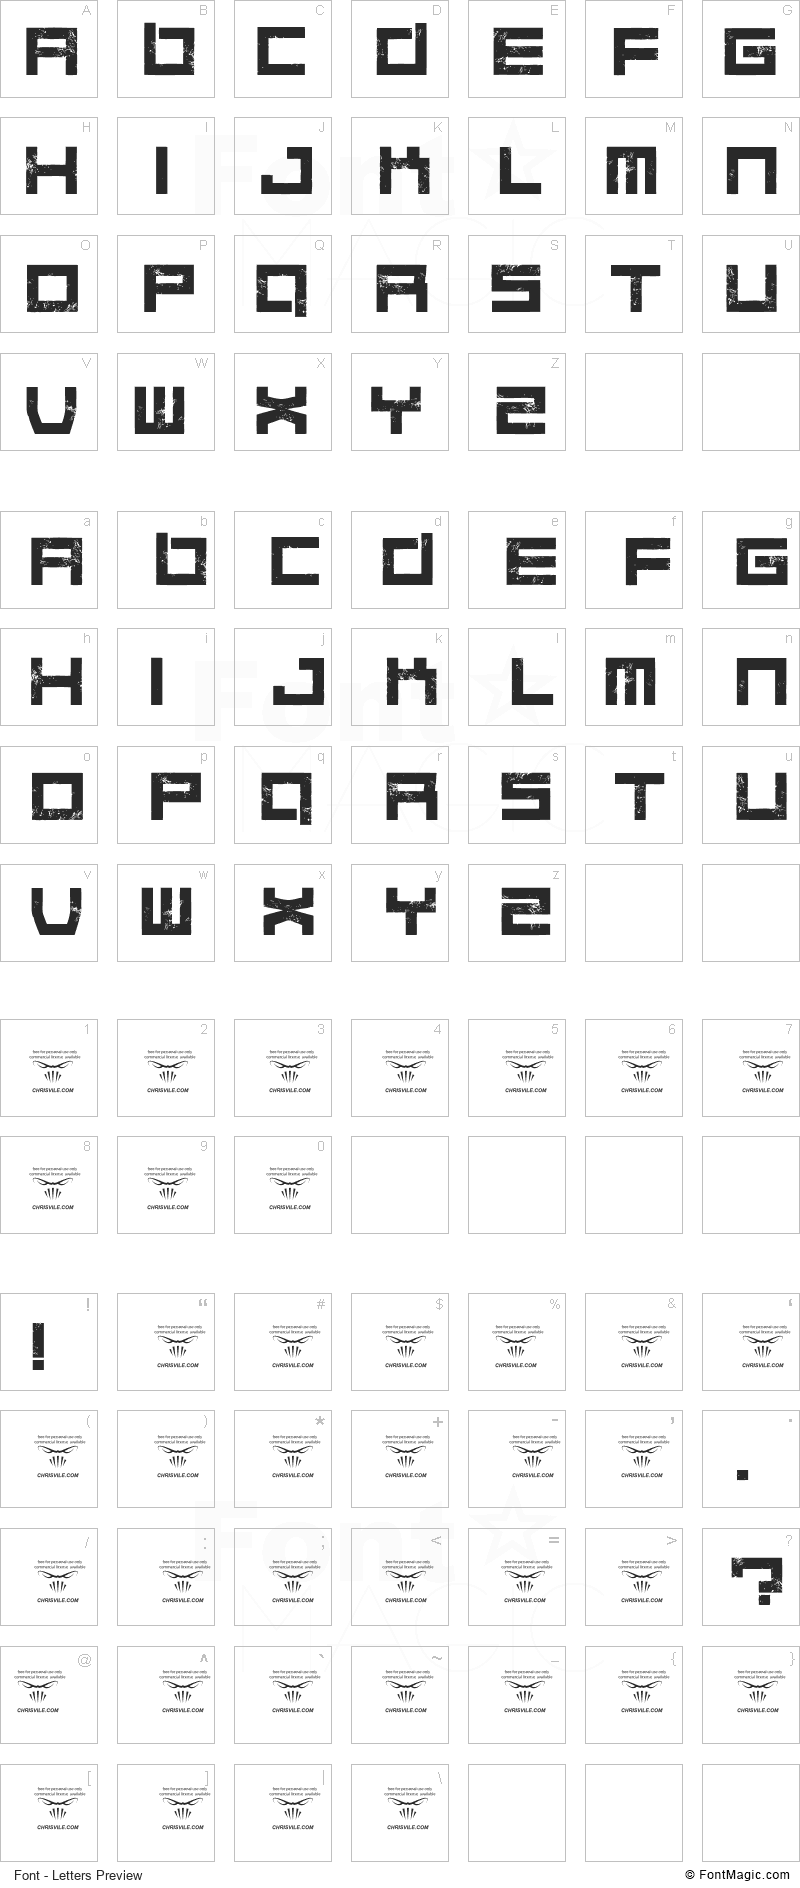 Quaaludes Font - All Latters Preview Chart